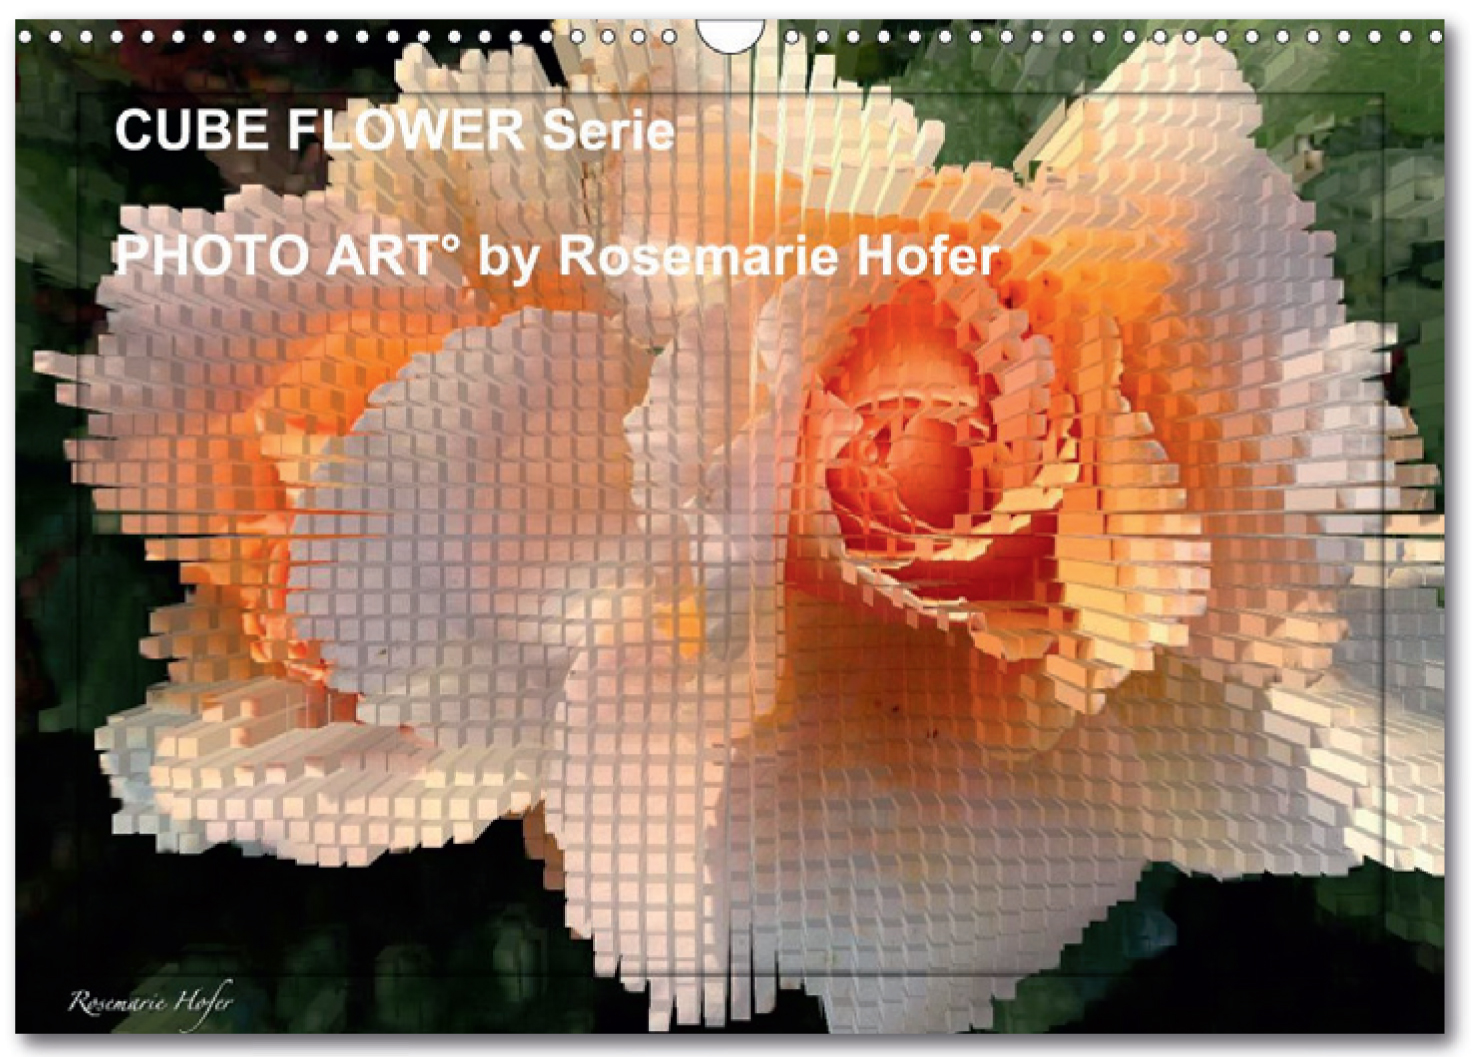 CUBE-FLOWER-PHOTO-ART°-by-Rosemarie-Hofer--Kalender-&-Posterbooks